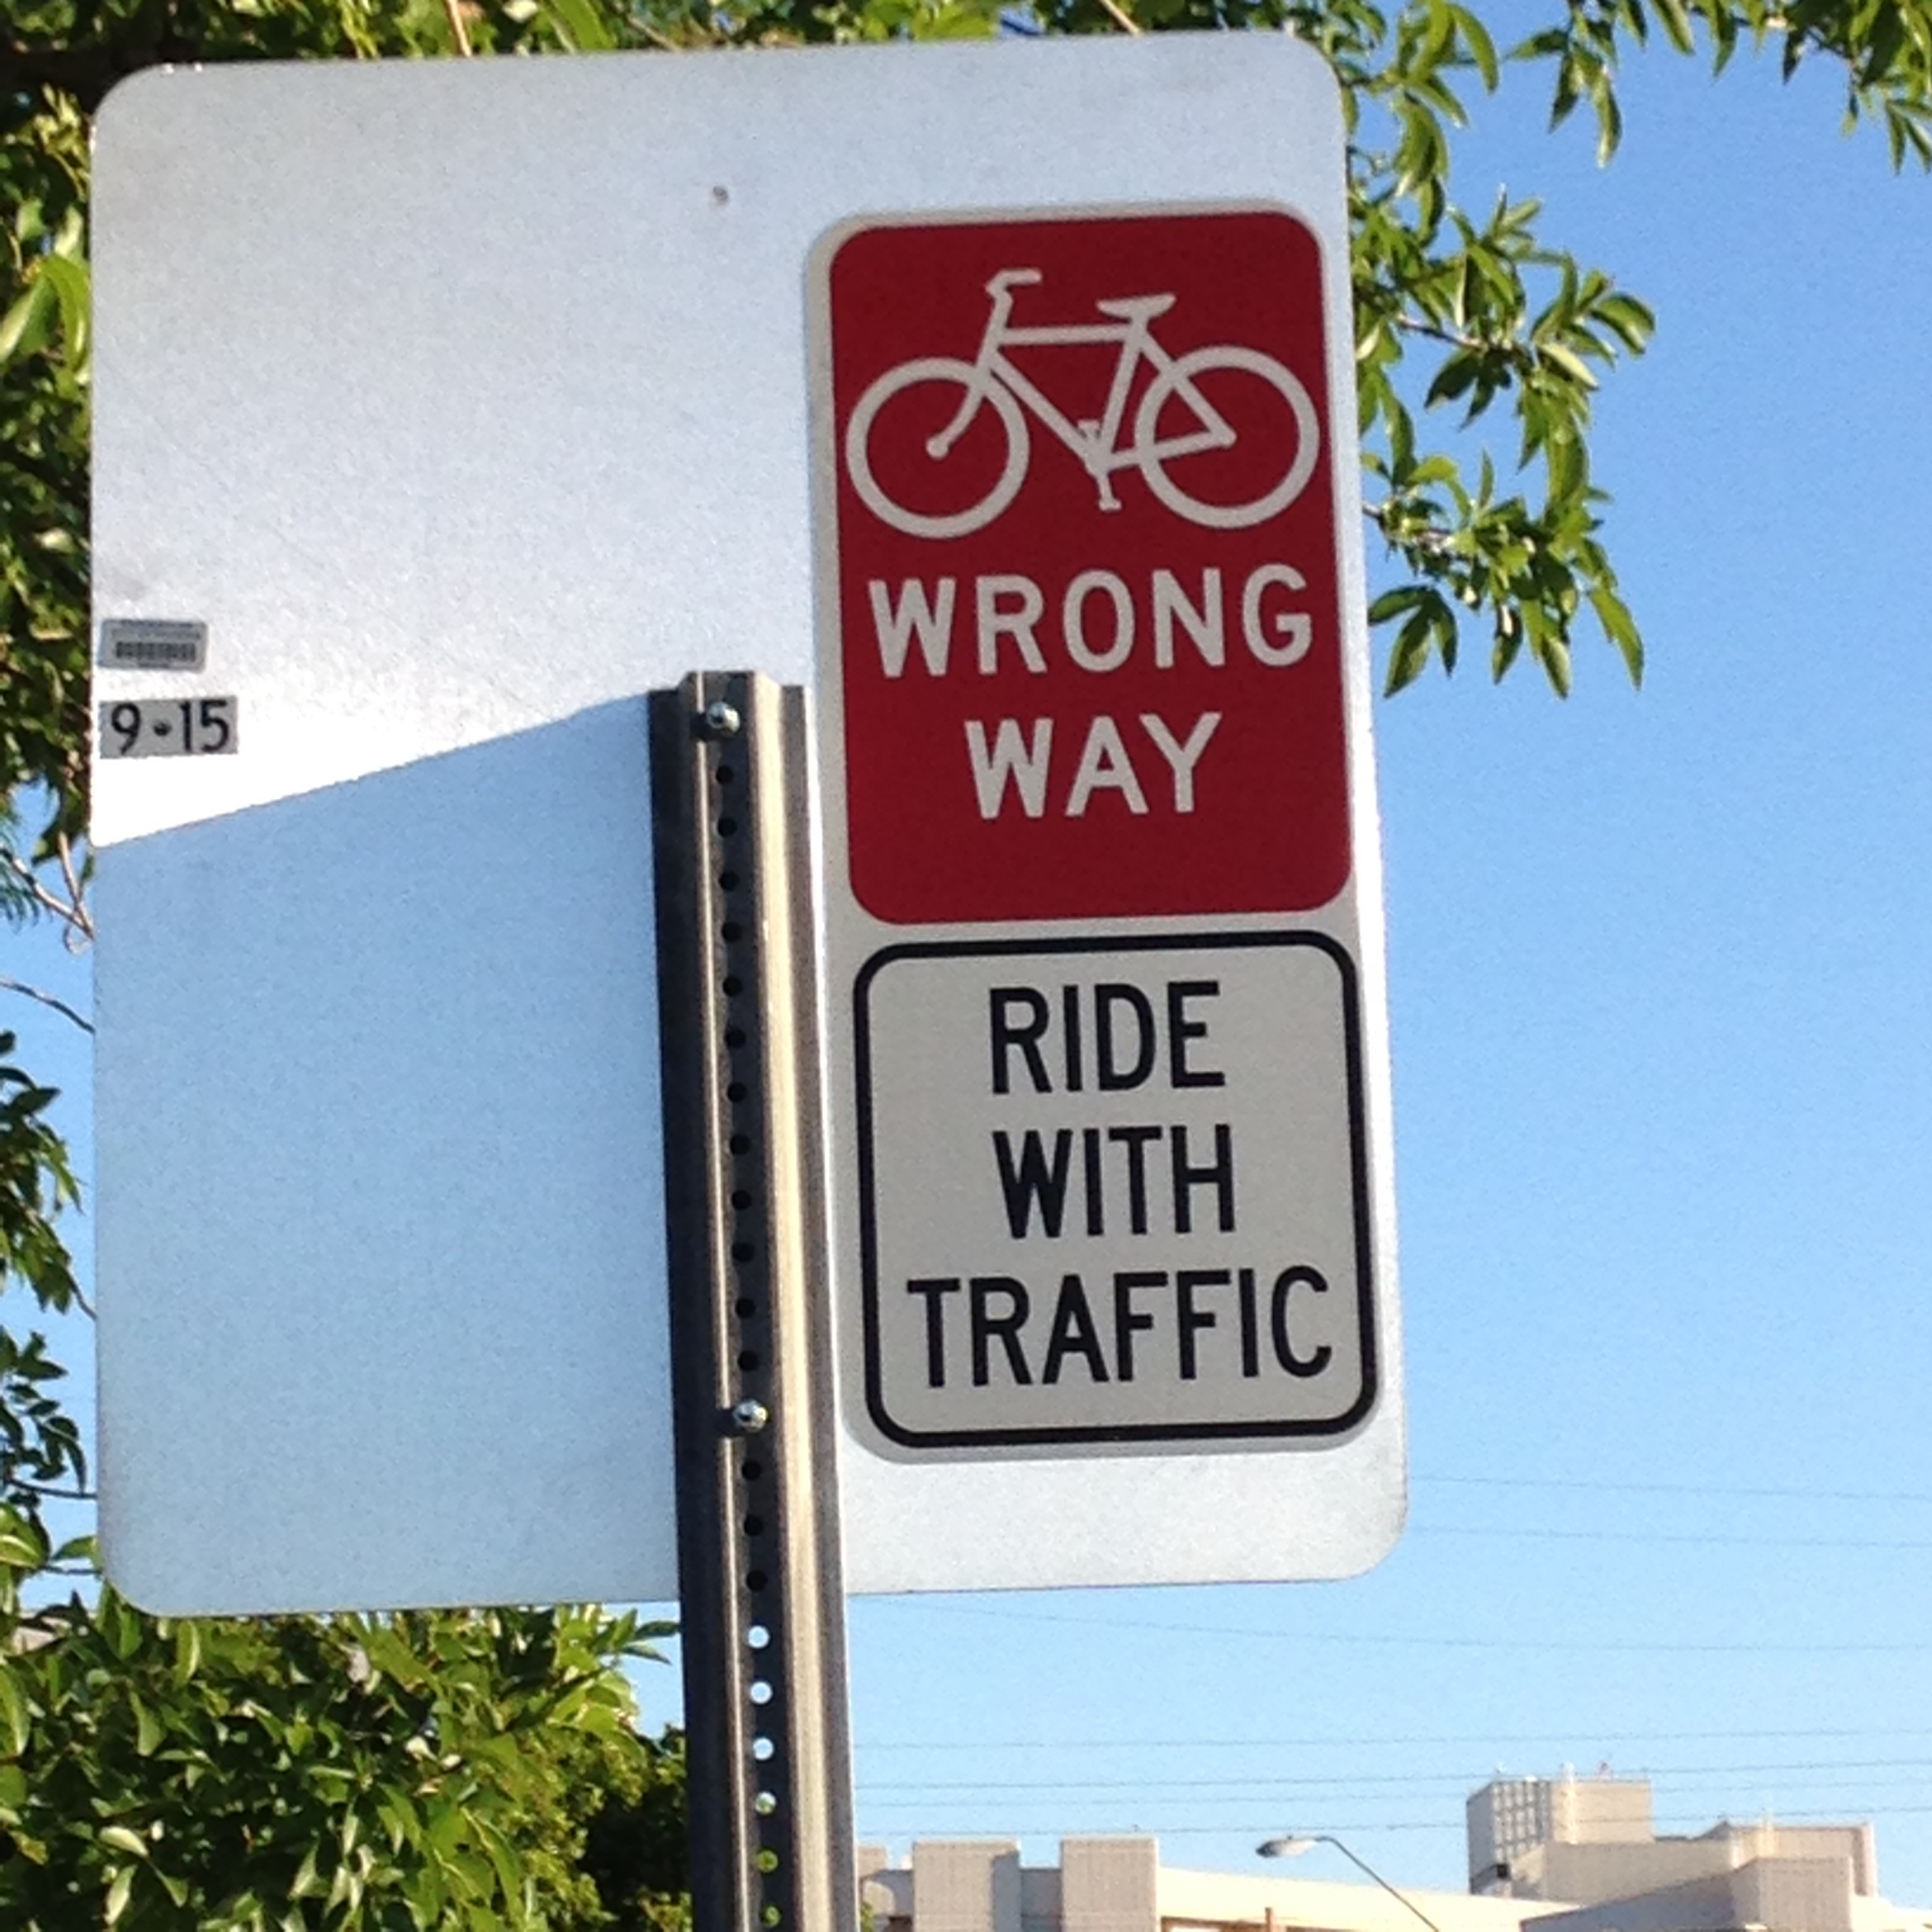 Wrong way bike sign, says Ride with Traffic